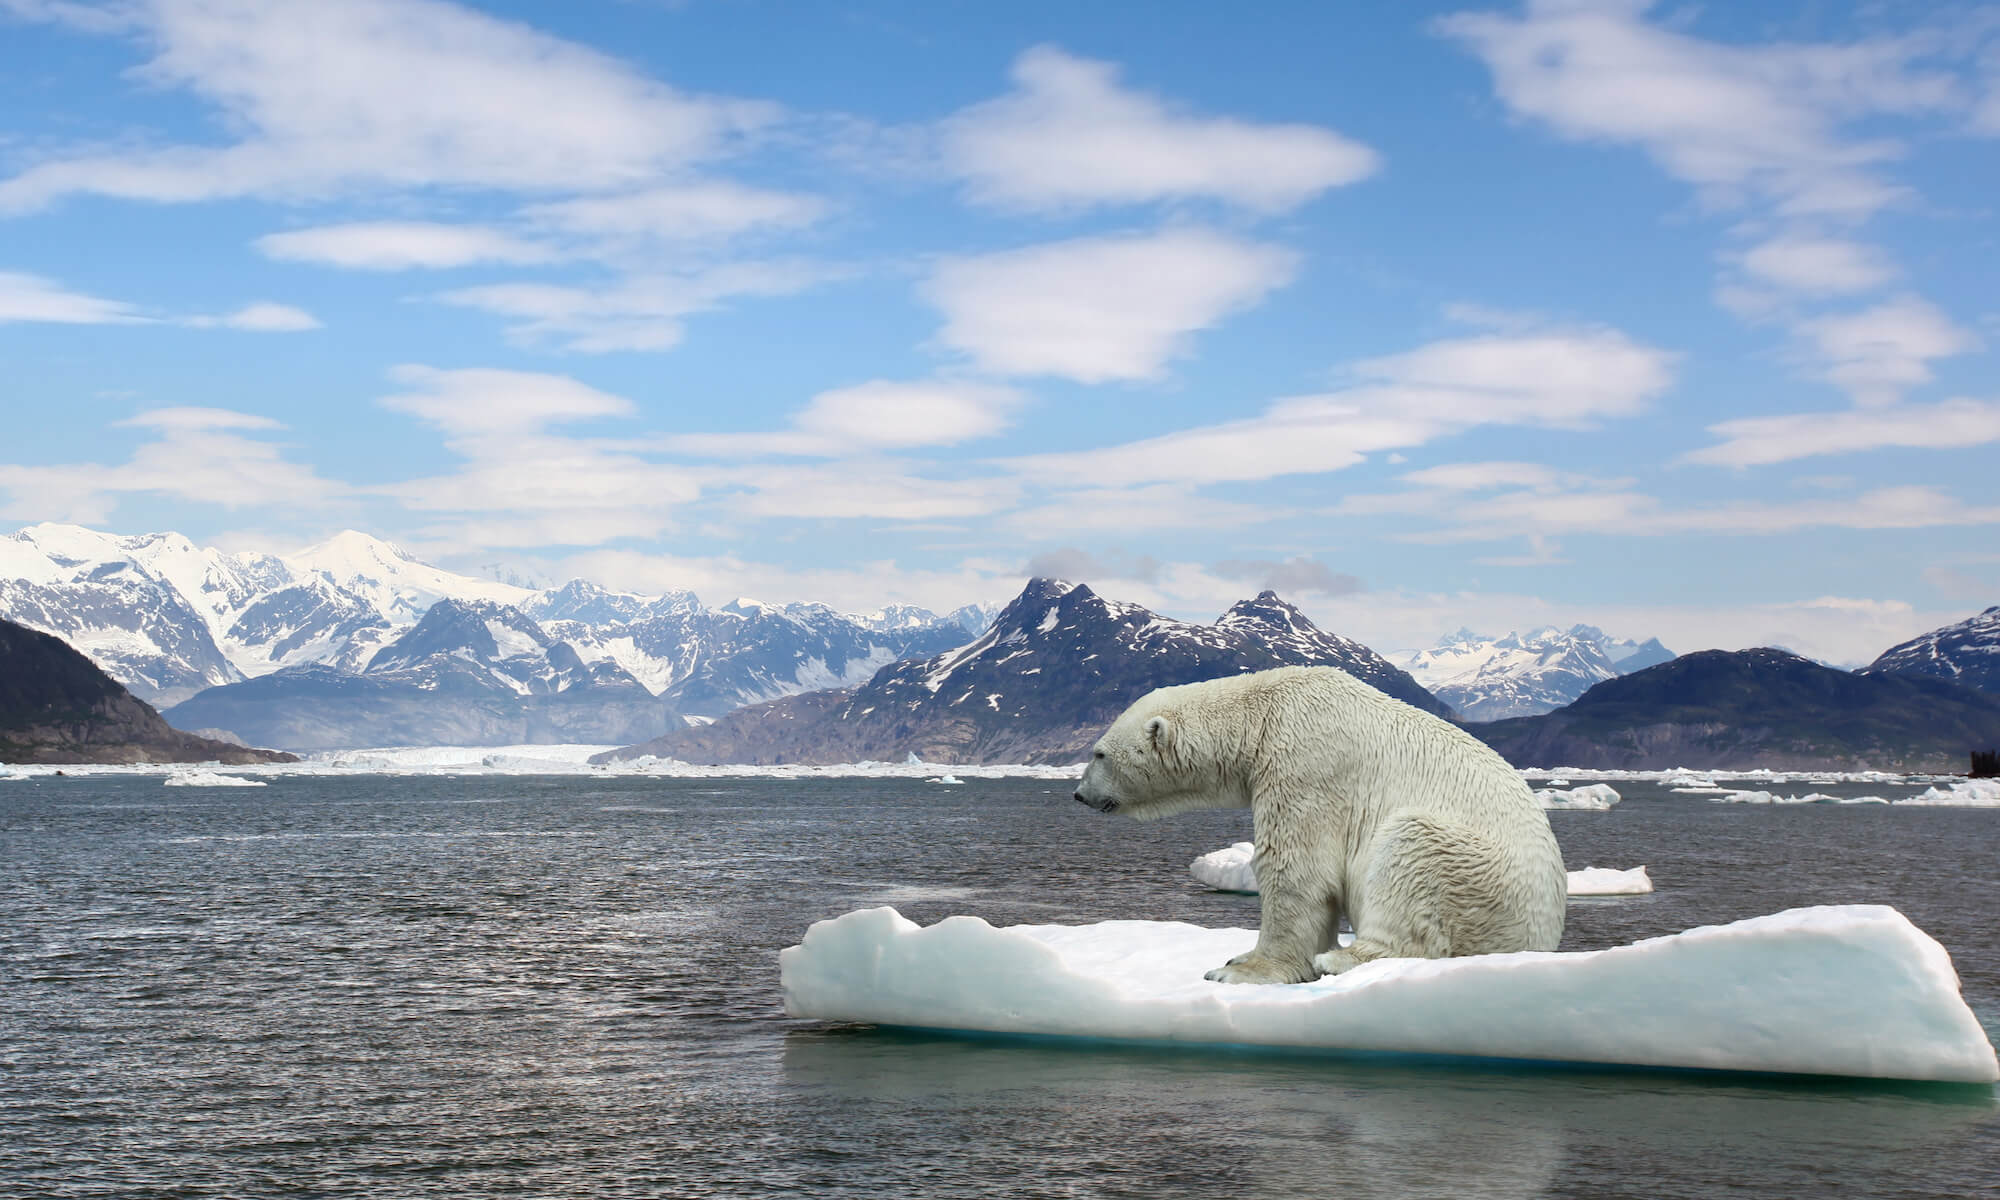 Polar bear on ice, global warming